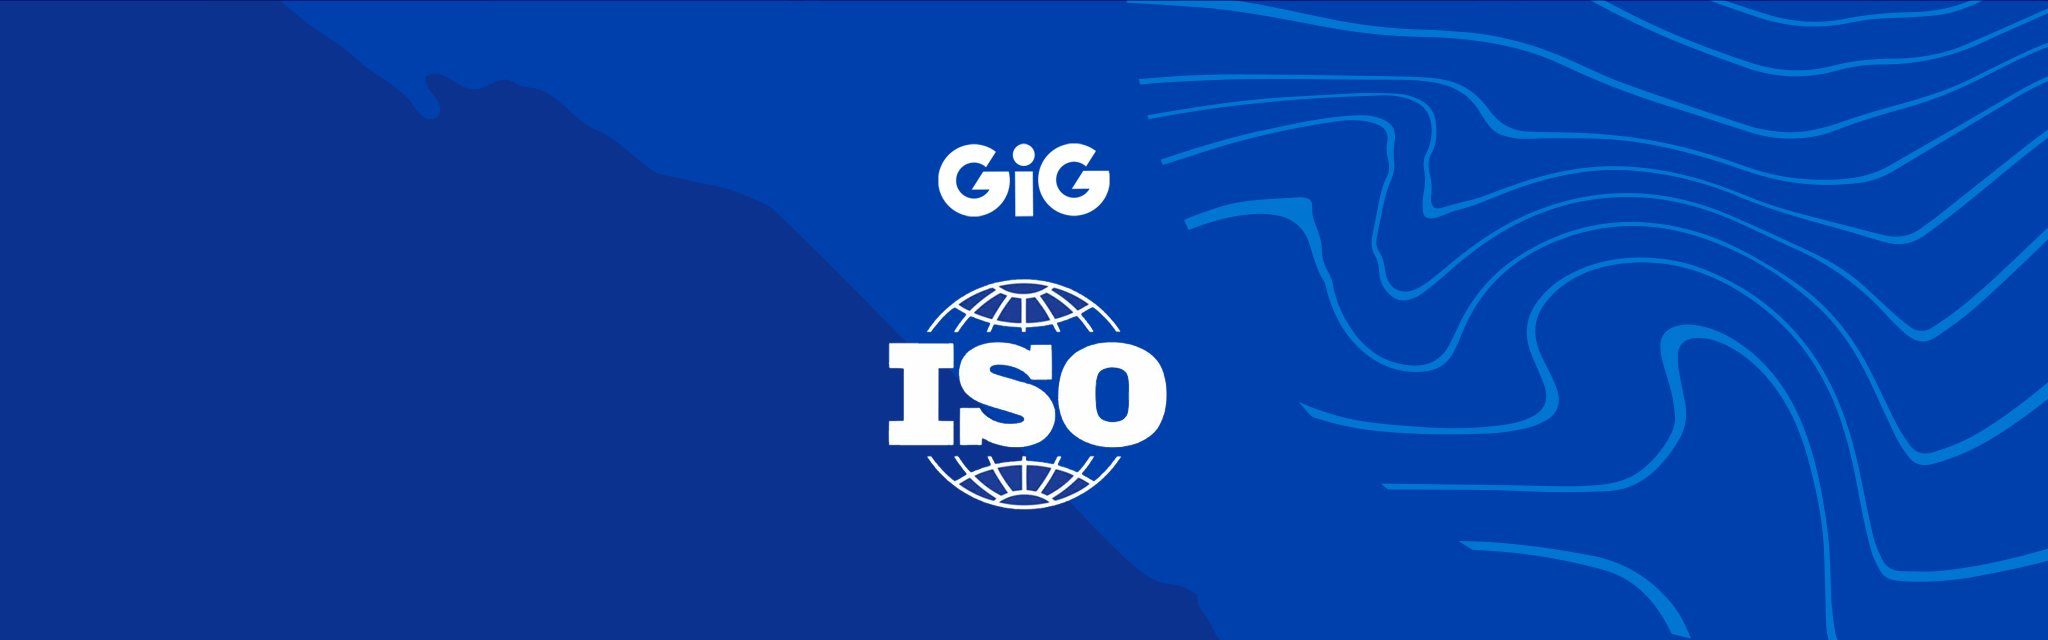 GiG ISO certification